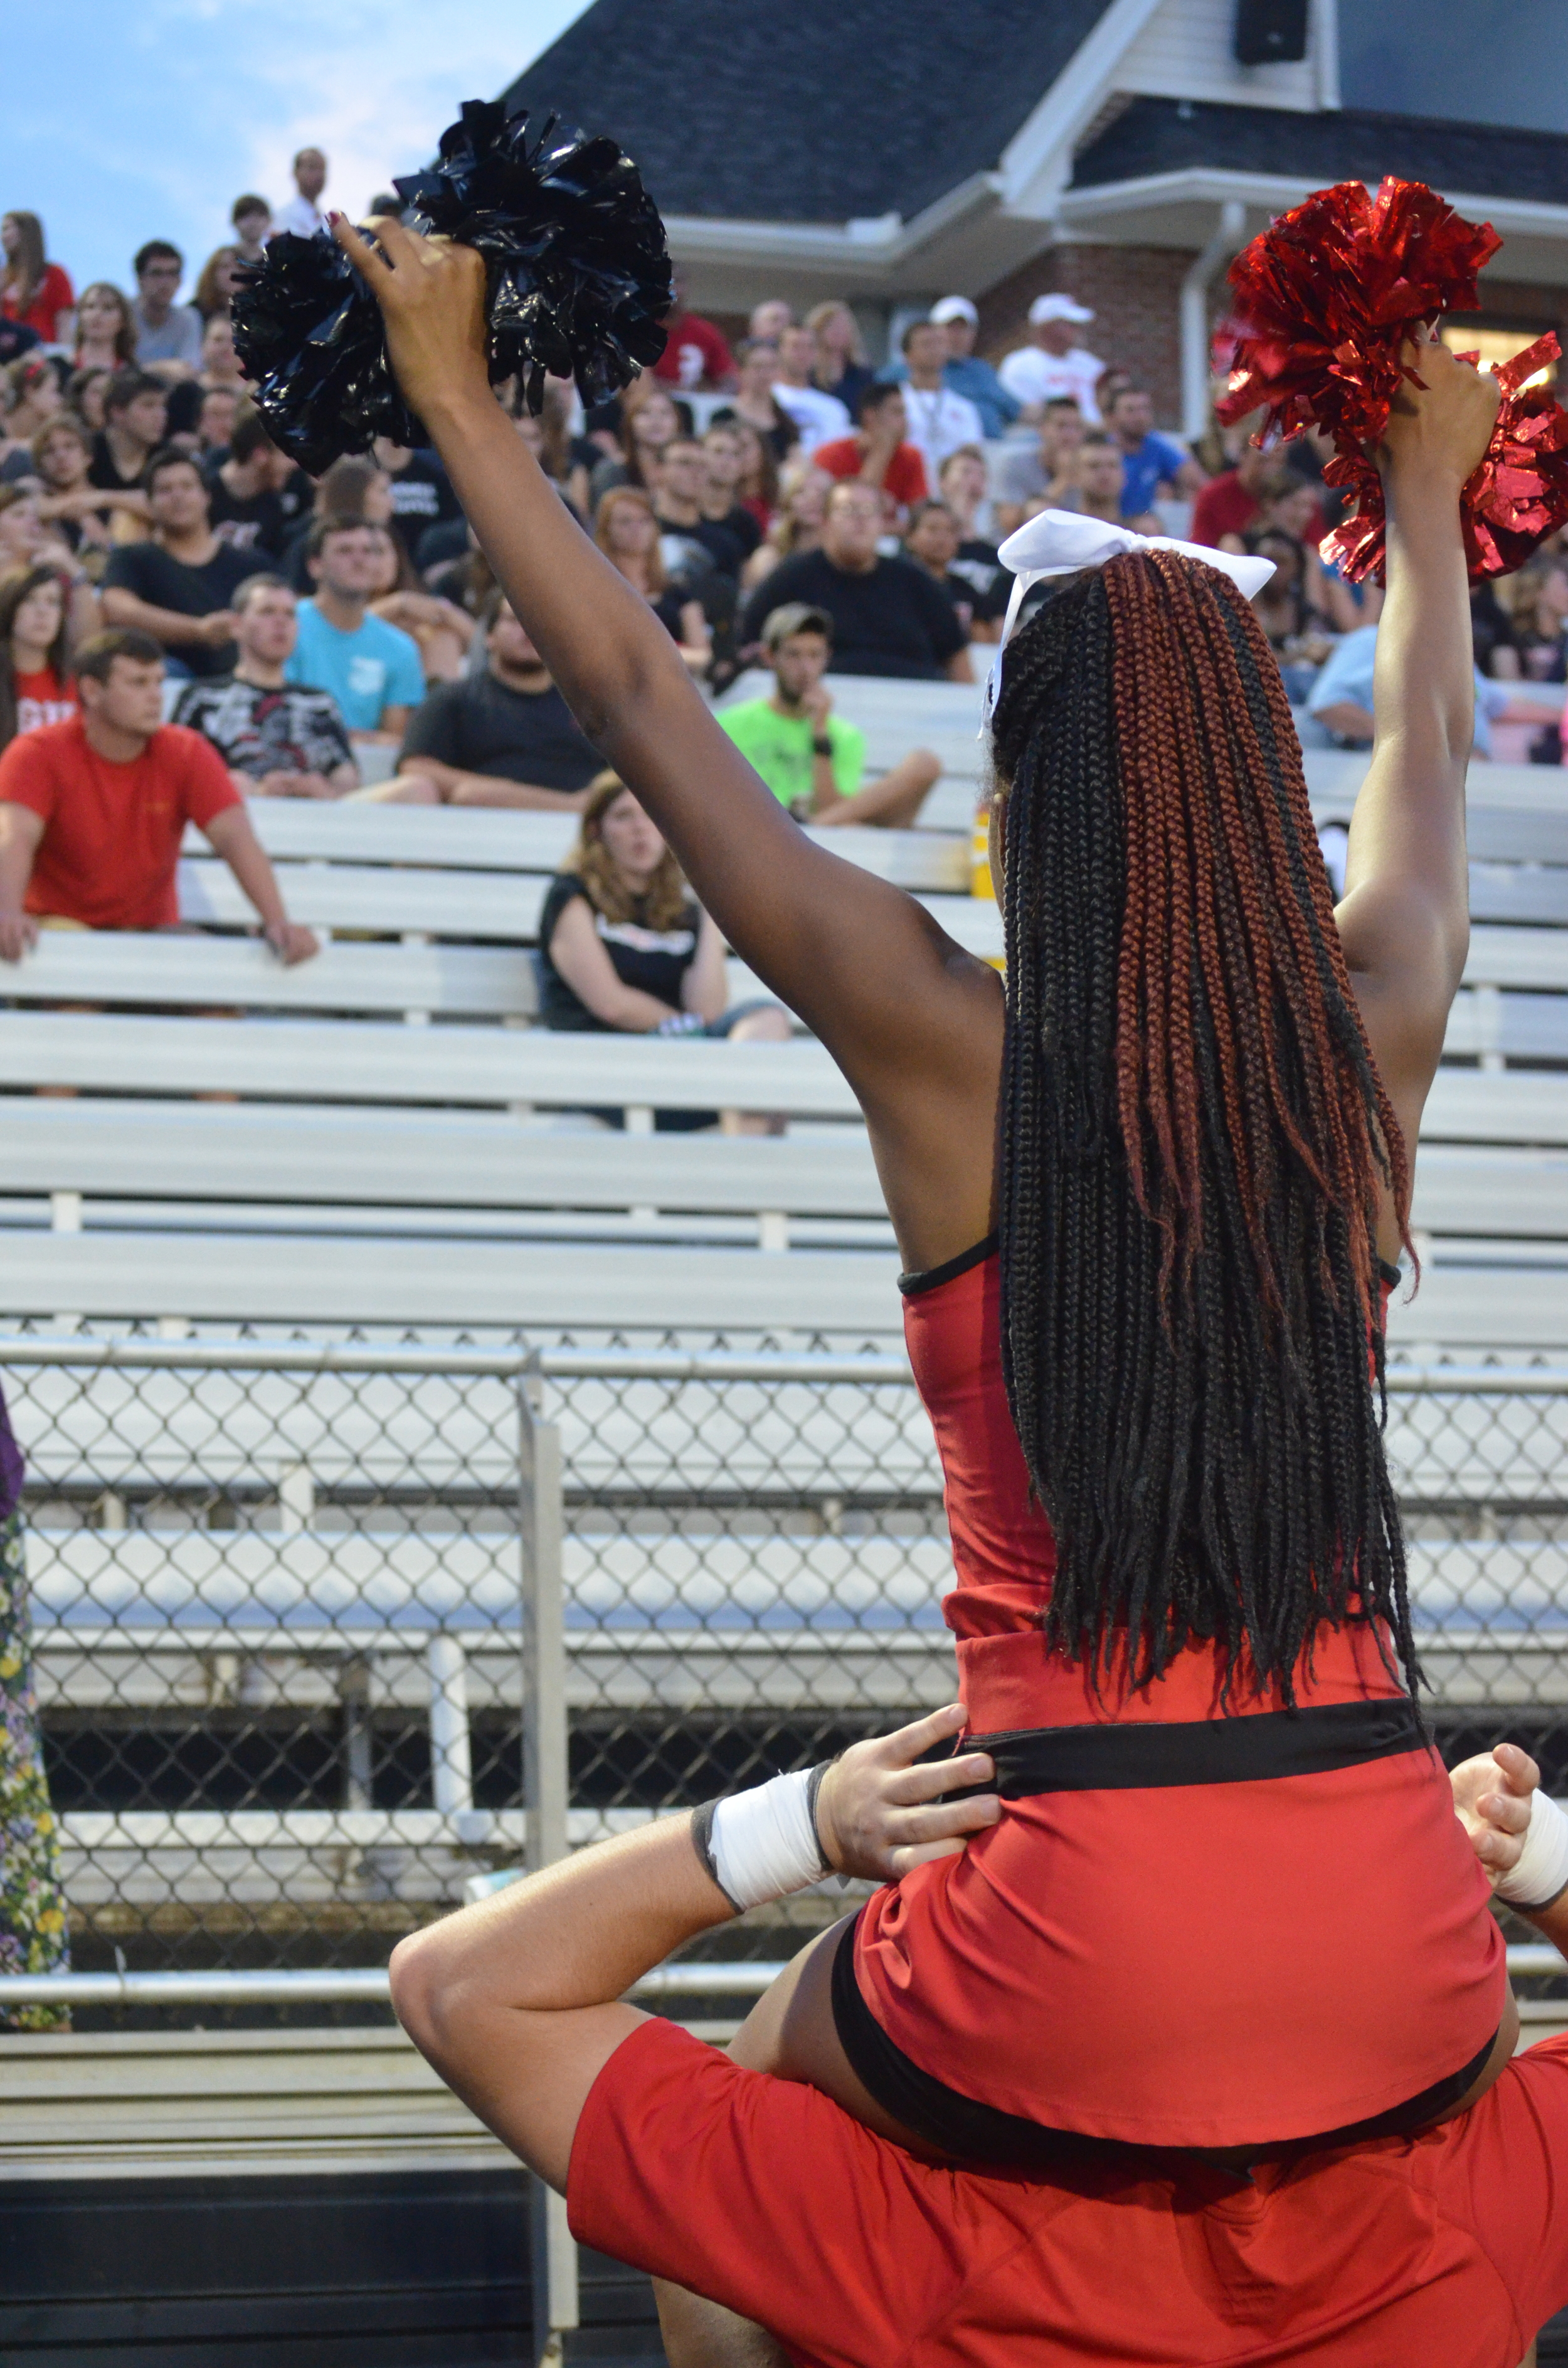 Cheerleader, Jay Whetstone, encourages the crowd to root for the Crusaders